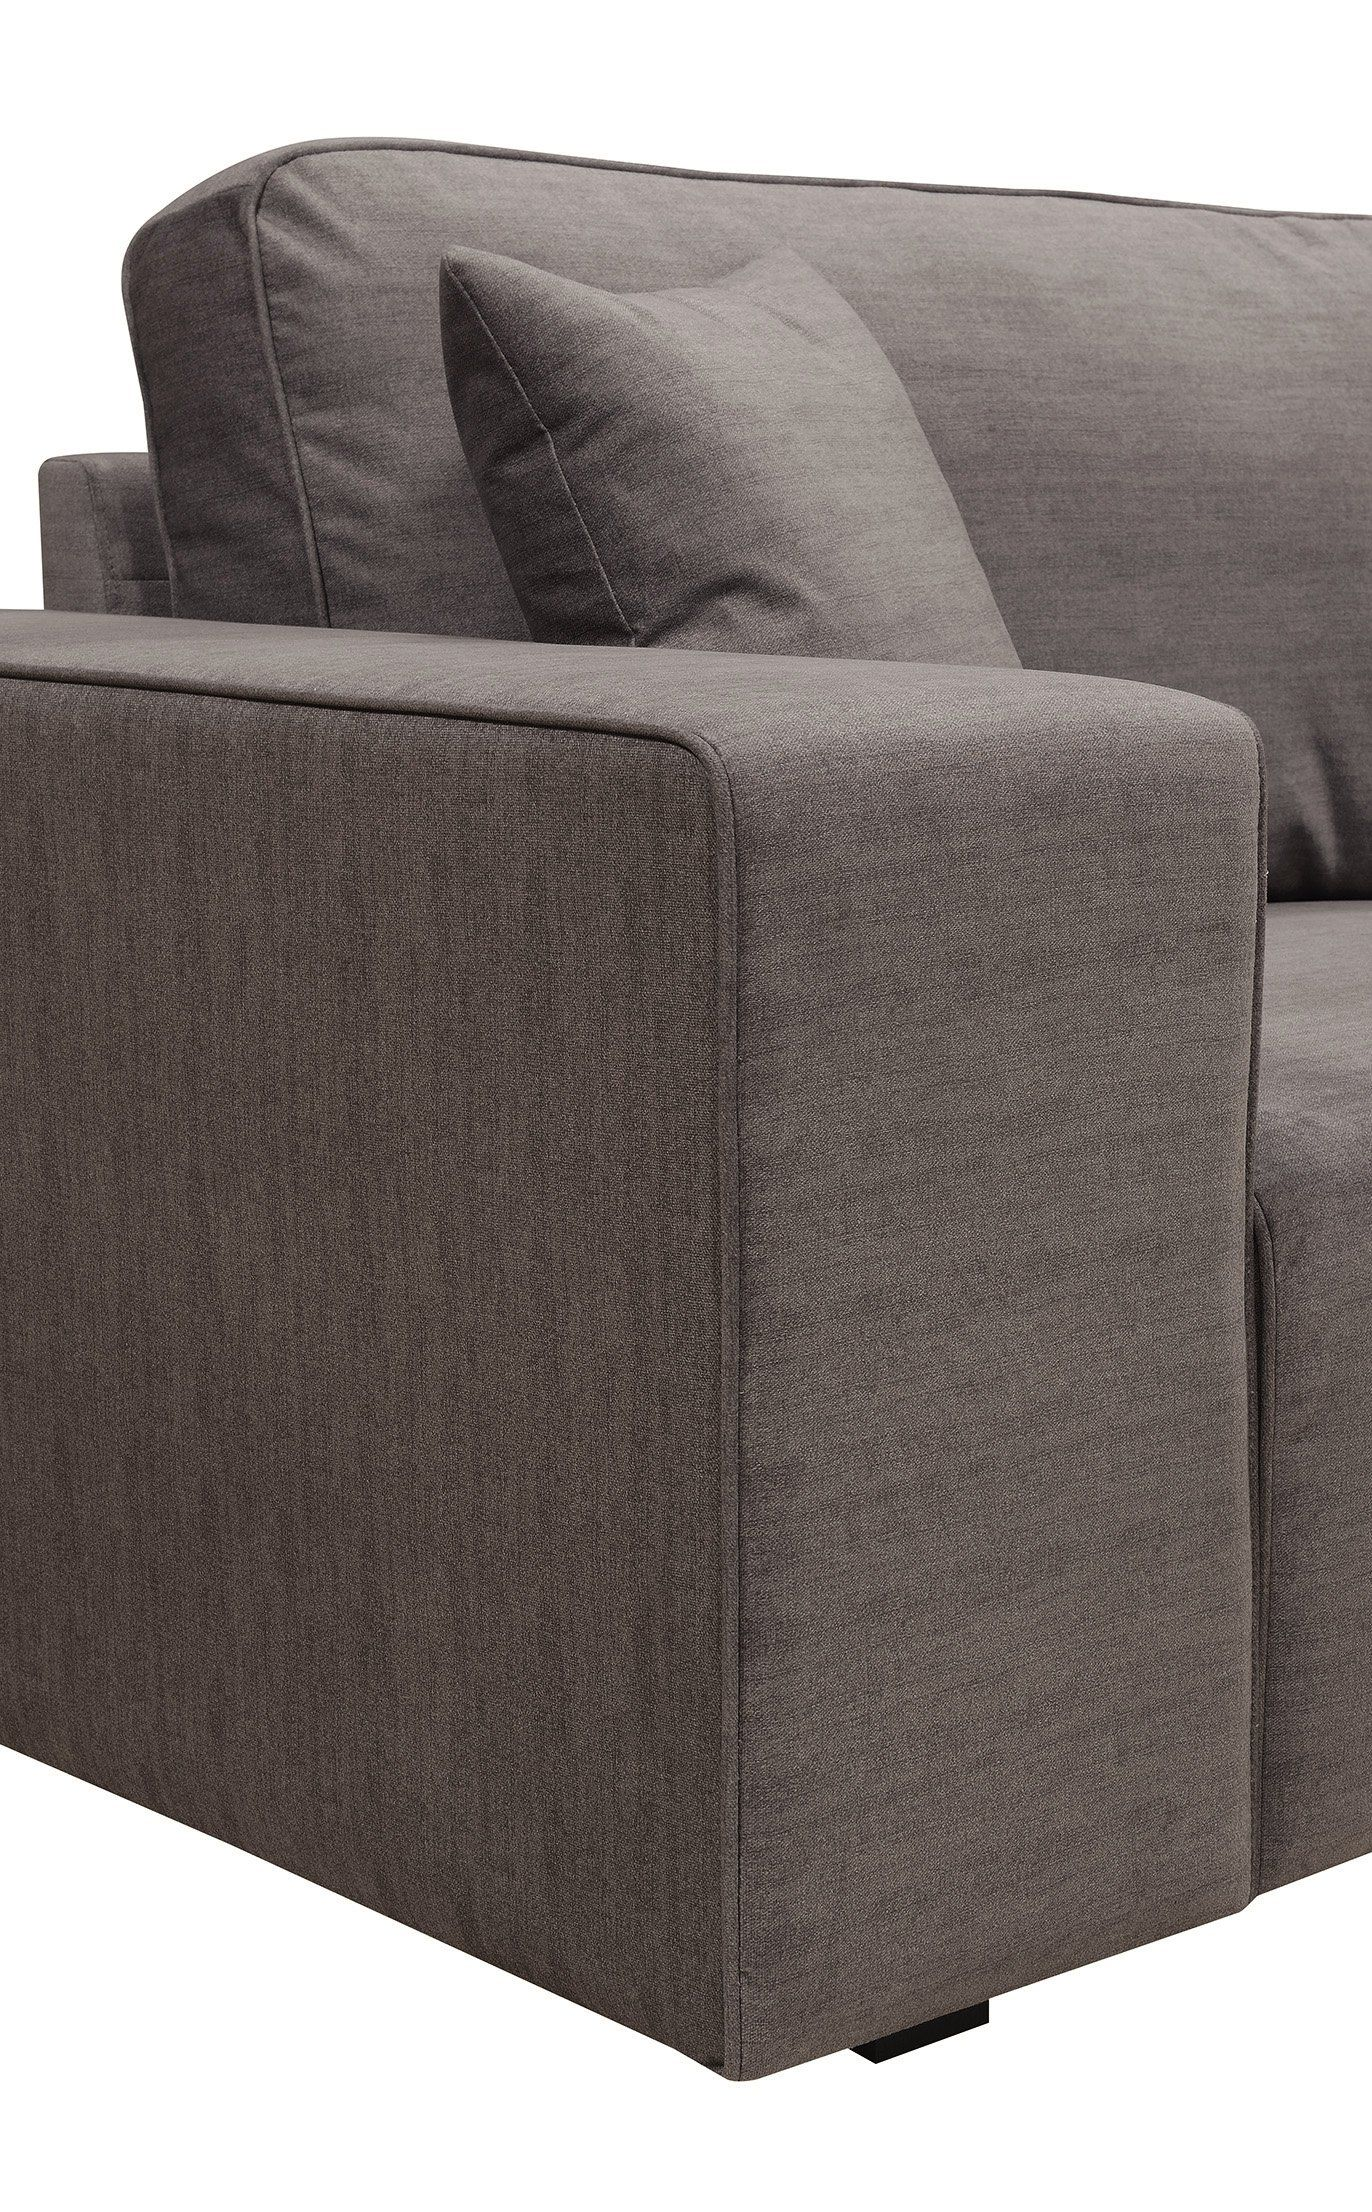 Serta Truman Sofa Chenille Fabric Fawn Click Image To Review More Details This Is An Modern Furniture Living Room Living Room Furniture Living Room Modern